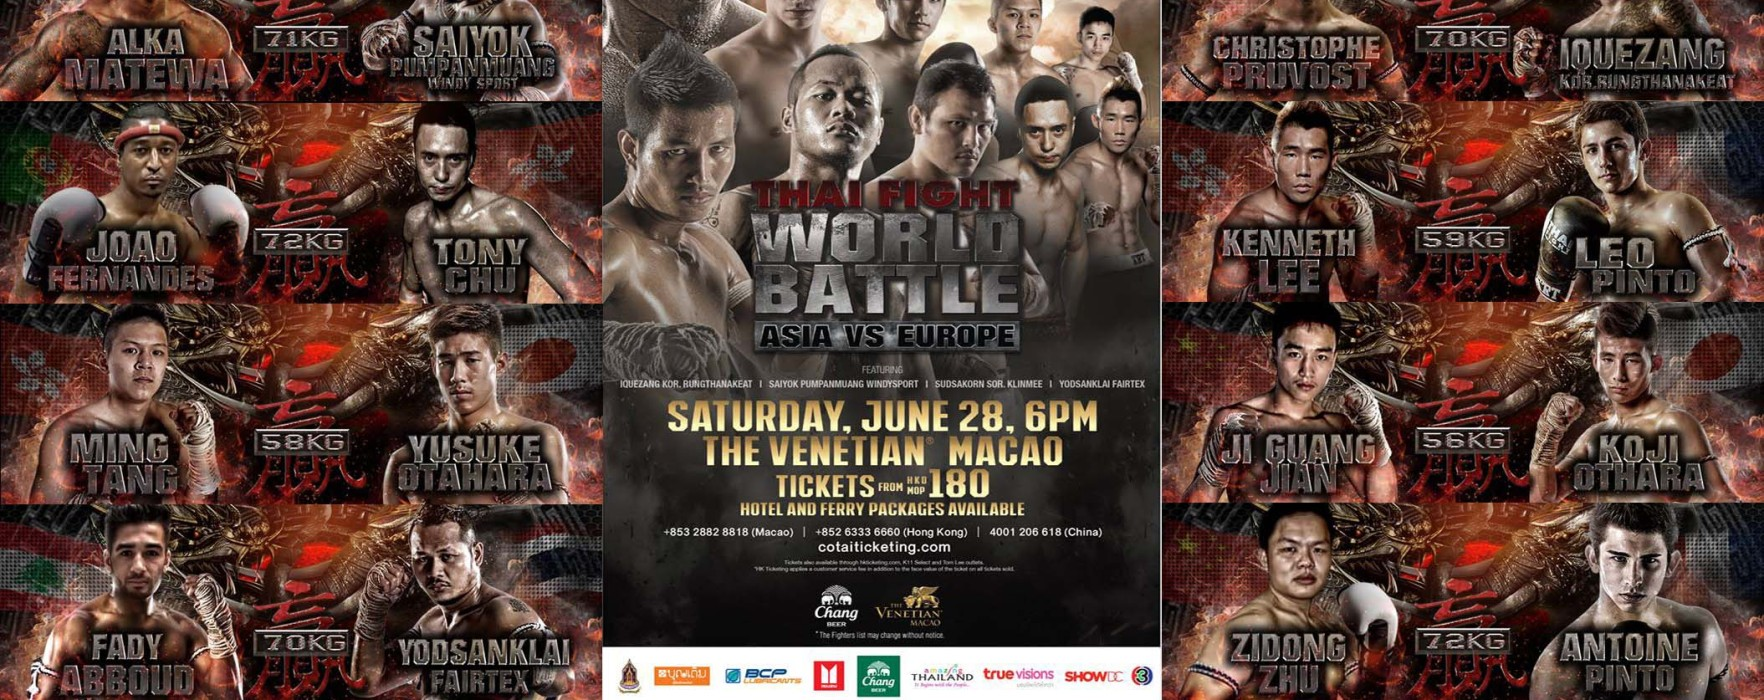 Card: Thai Fight Macao (China) – 28th June 2014